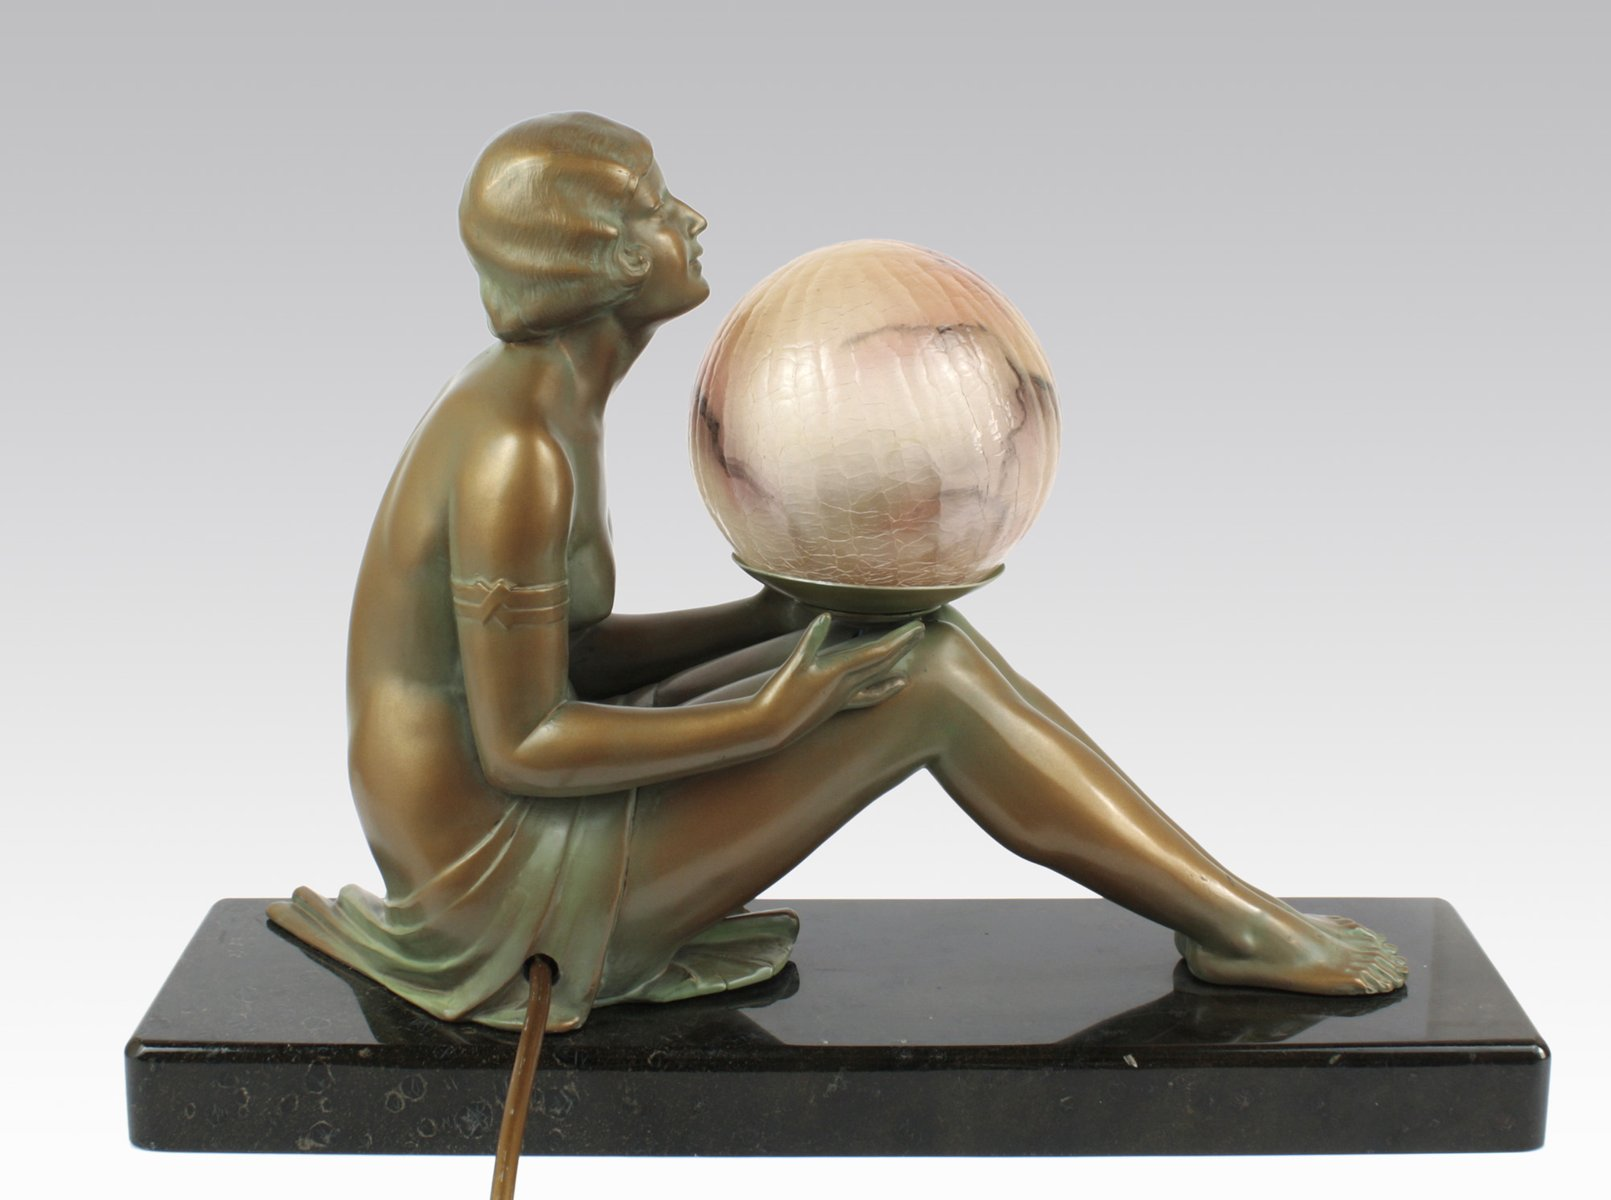 German art deco figure lamp 1930s for sale at pamono for Art deco artists list